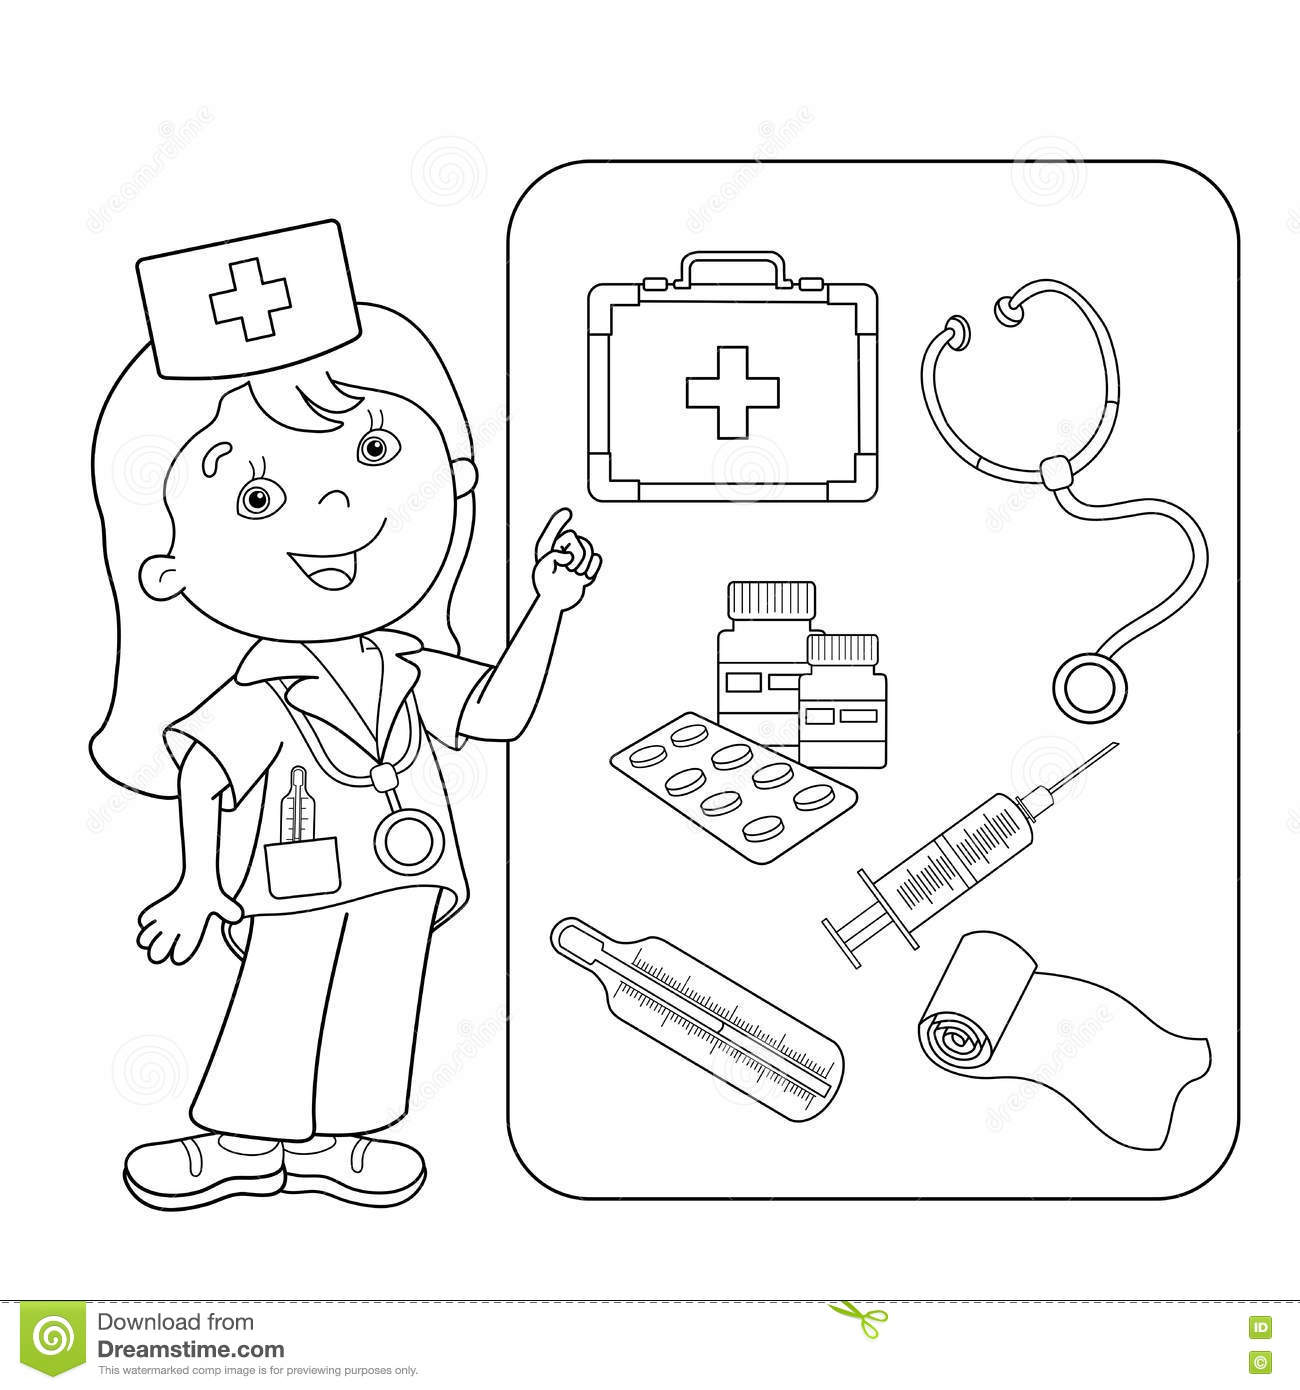 Coloring Page Outline Of Cartoon Doctor With First Aid Kit Stock Vector